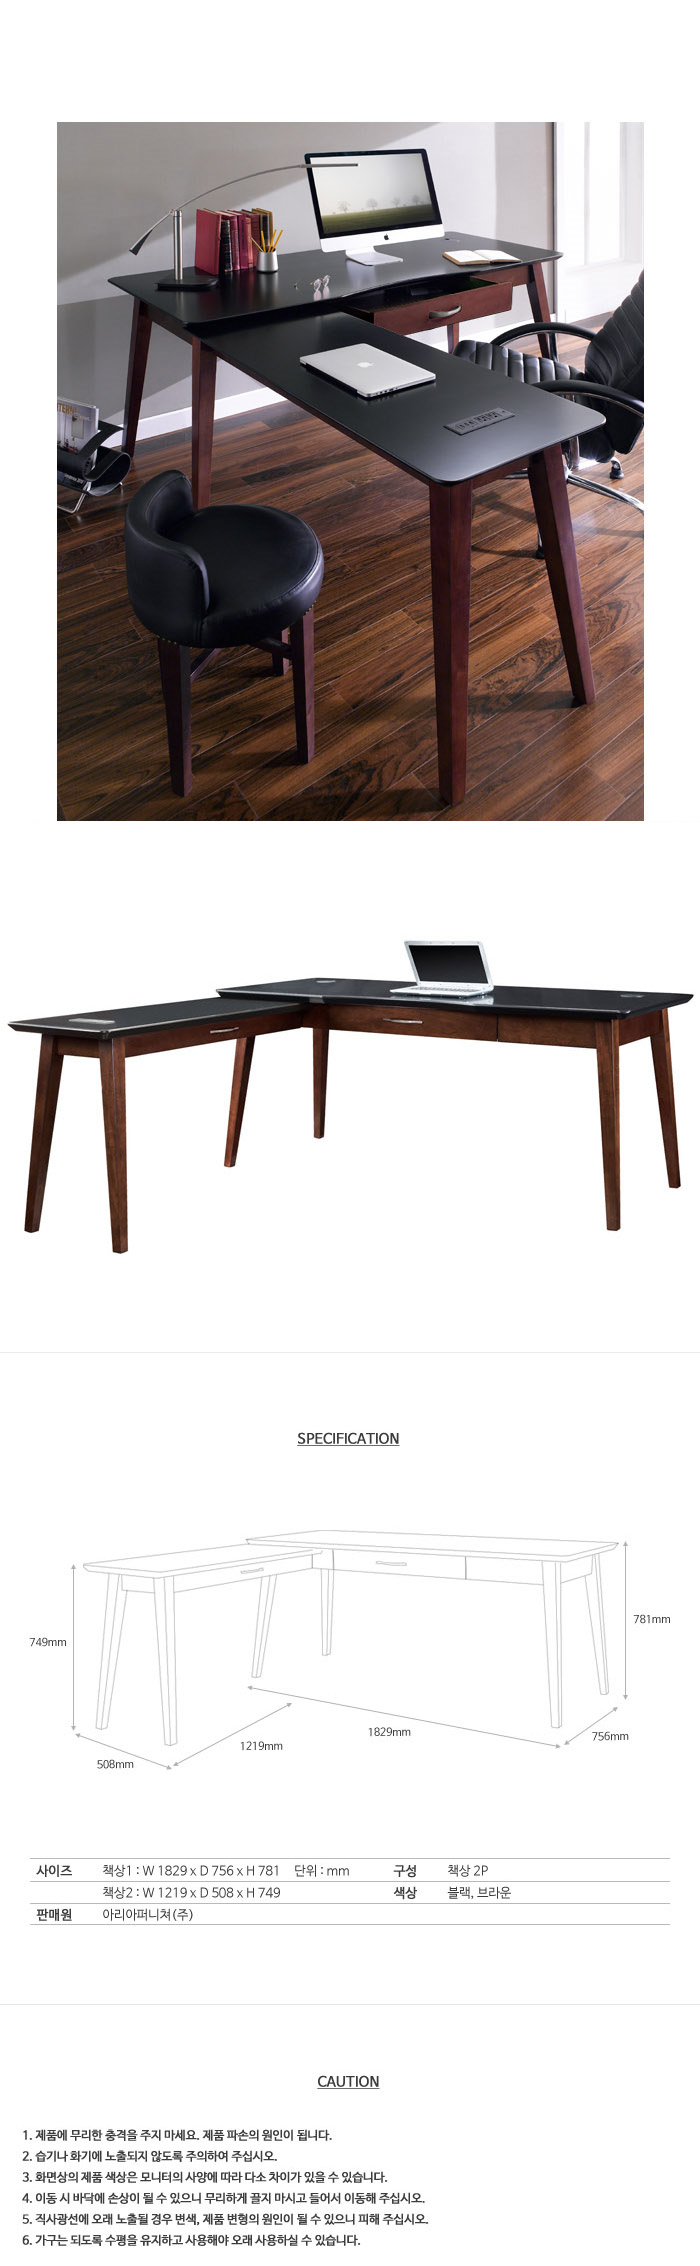 7_1_black-L_72_writing_return_desk.jpg